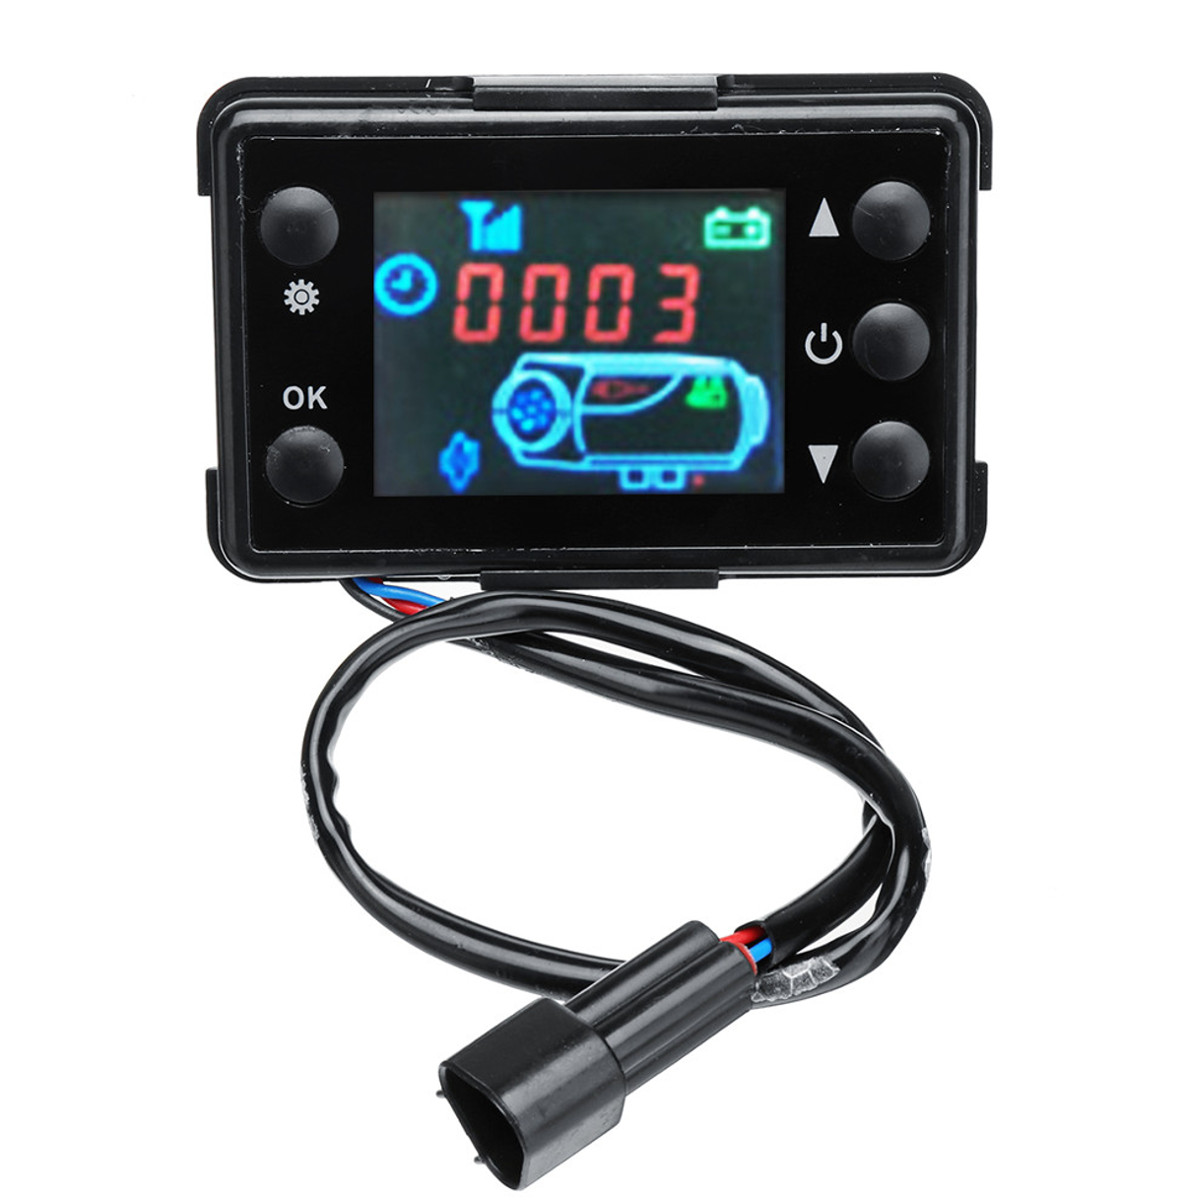 Hospitable 12v/24v 3/5kw Lcd Monitor Parking Heater Switch Car Heating Device Controller Universal For Car Track Air Heater Electric Vehicle Parts